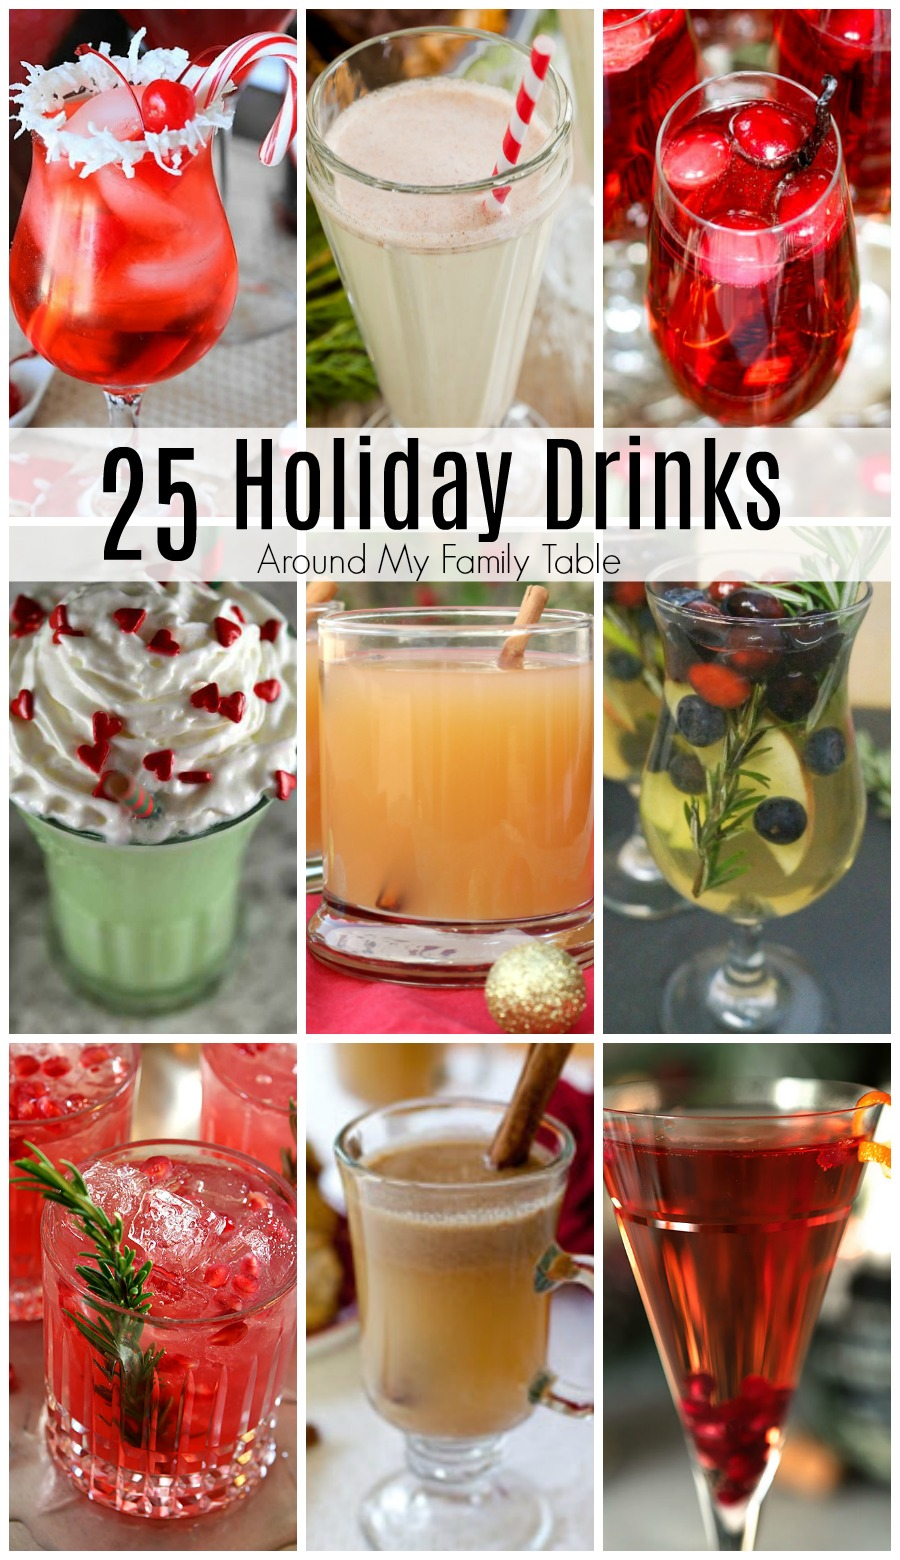 From slow cooker punch to Christmas morning mimosas, there are so many simple and delicious holiday drinks for everyone on your guest list. I hope you enjoy these delicious Holiday Drinks at your next party!